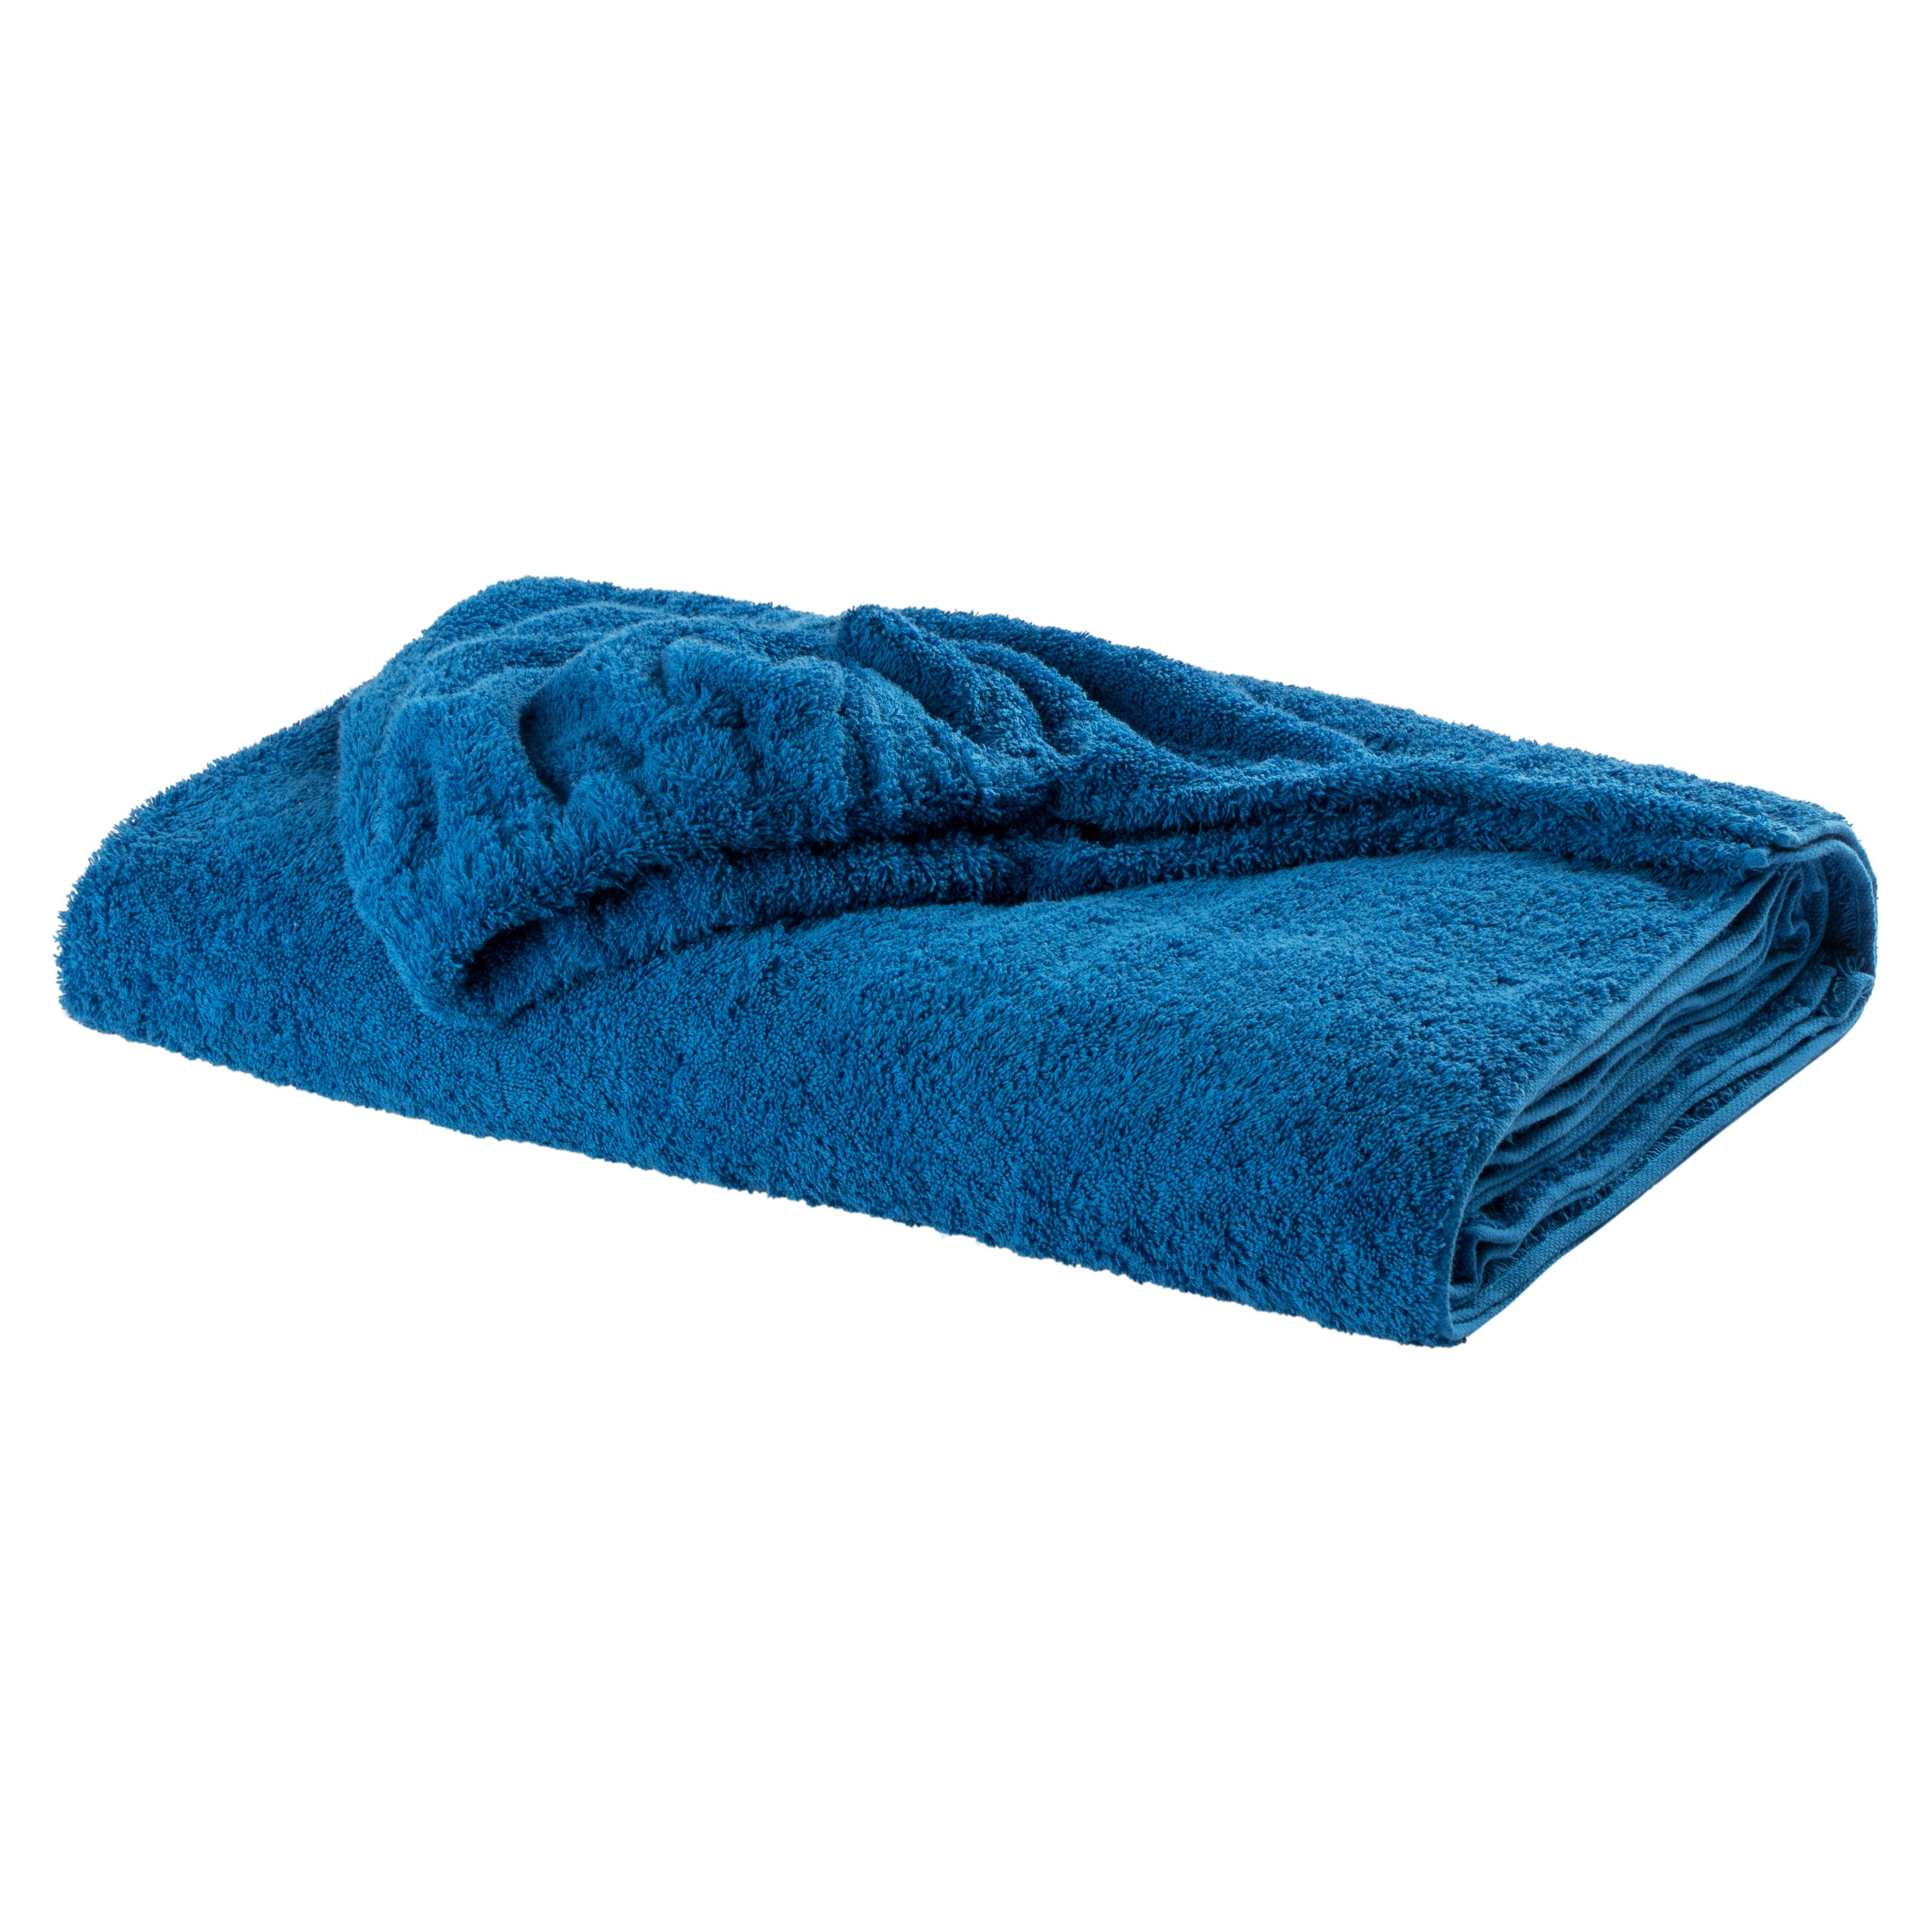 Outstanding Caribbean Natural Royal Lounge Chair Cover Towel 90 X 40 100 Cotton Royal Blue Caraccident5 Cool Chair Designs And Ideas Caraccident5Info